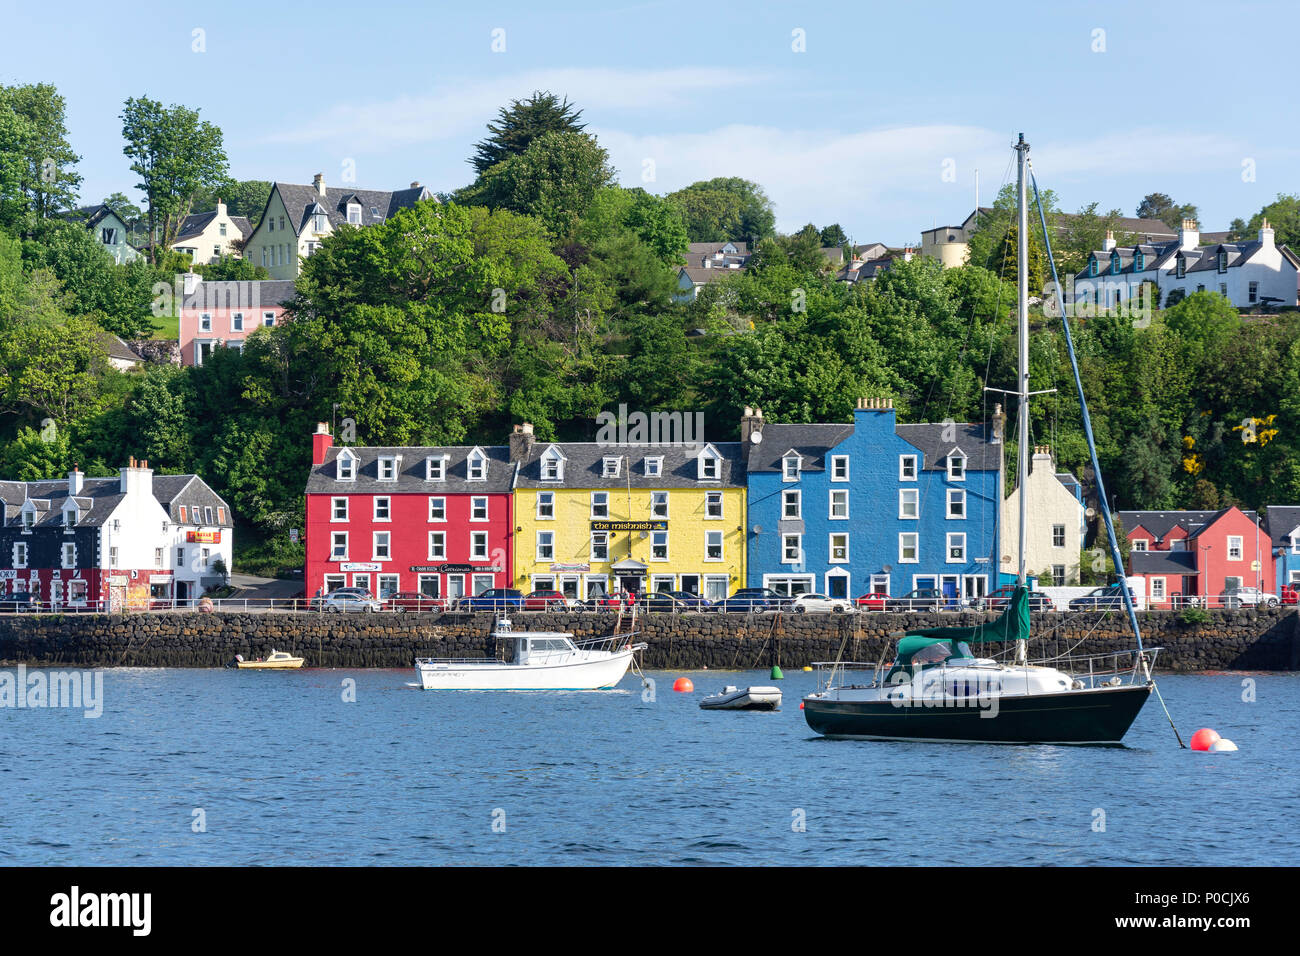 Colourful houses on quayside, Tobermory, Isle of Bute, Inner Hebrides, Argyll and Bute, Scotland, United Kingdom - Stock Image